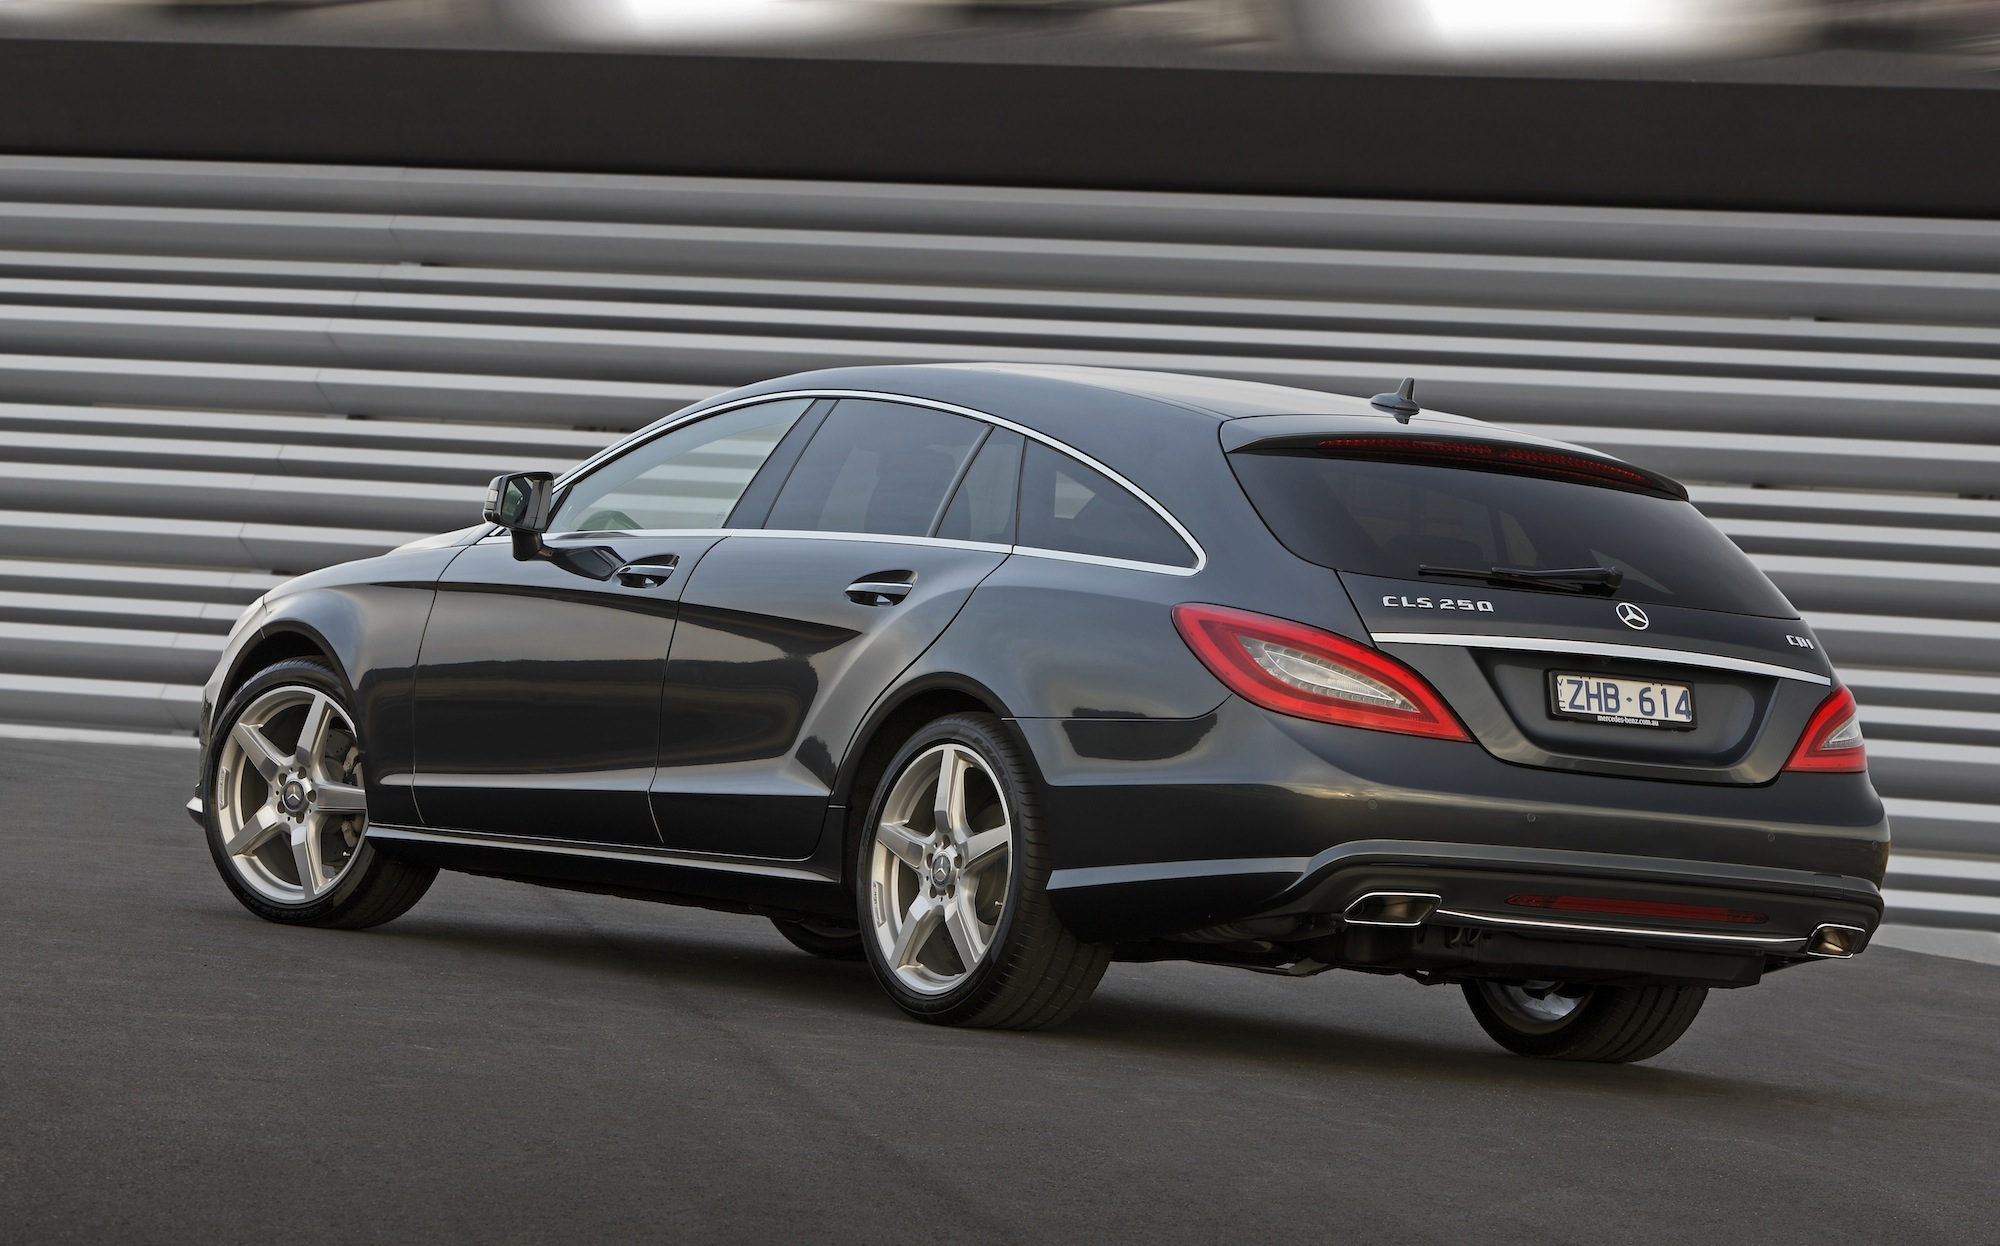 Mercedes Benz Cls Shooting Brake Coupe Style Wagon Arrives Photos 1 Of 5